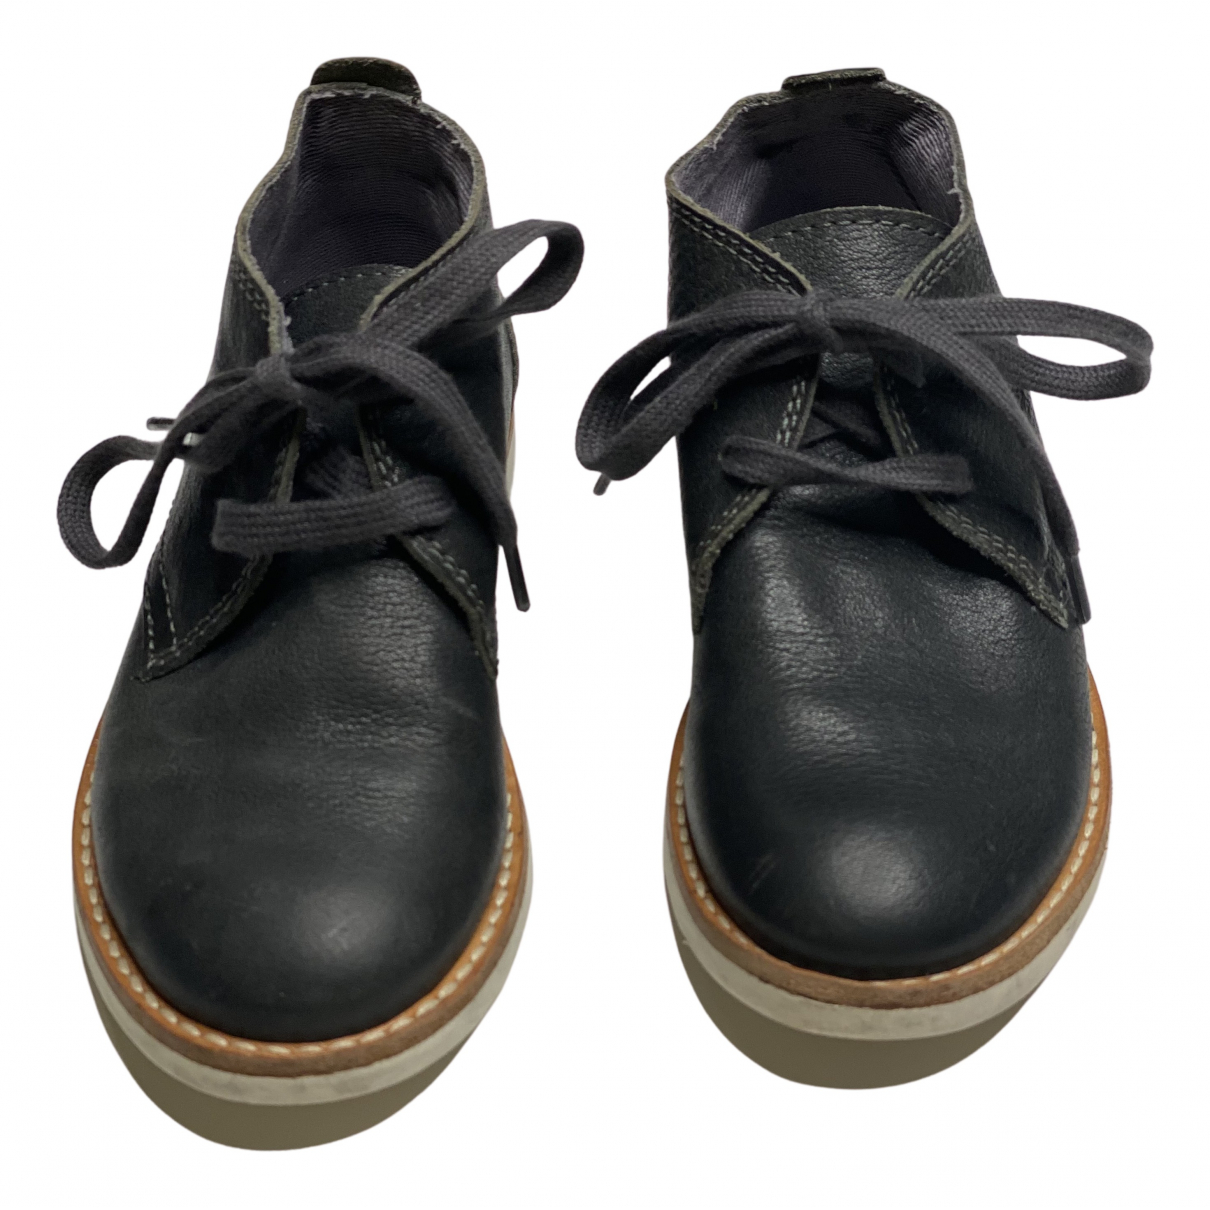 Bonpoint N Anthracite Leather Lace up boots for Kids 26 FR